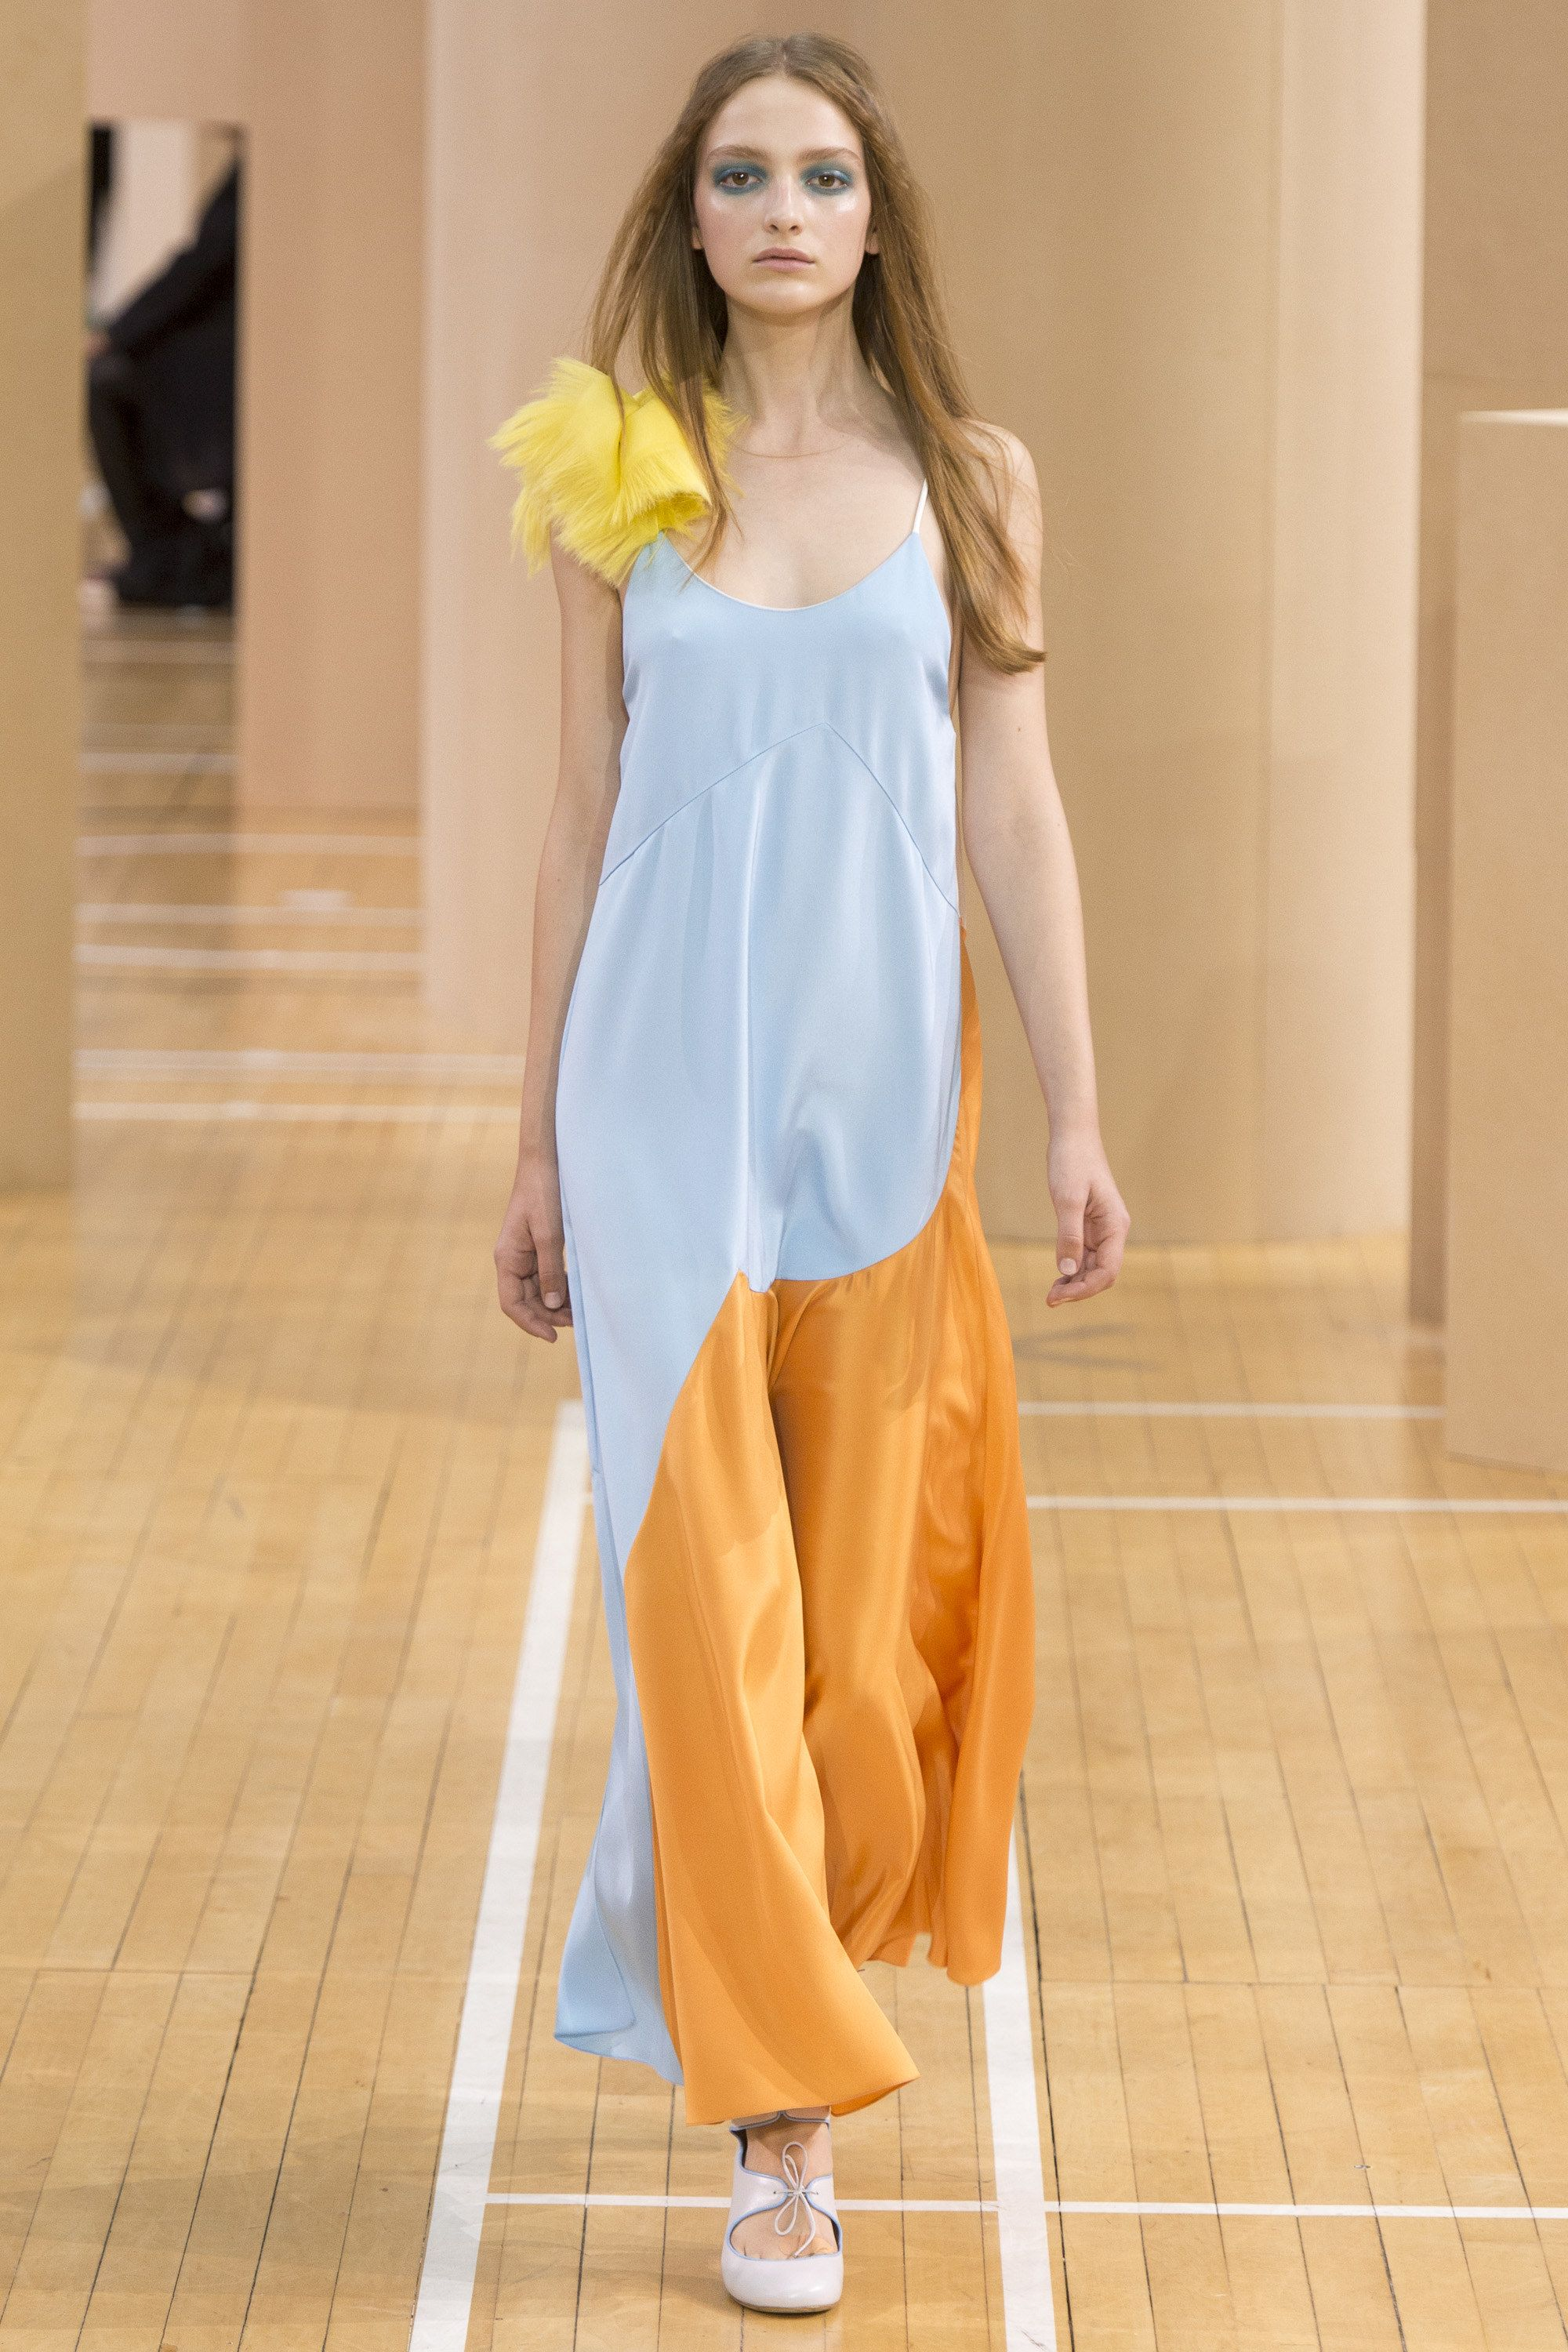 http://www.vogue.com/fashion-shows/spring-2016-ready-to-wear/roksanda/slideshow/collection